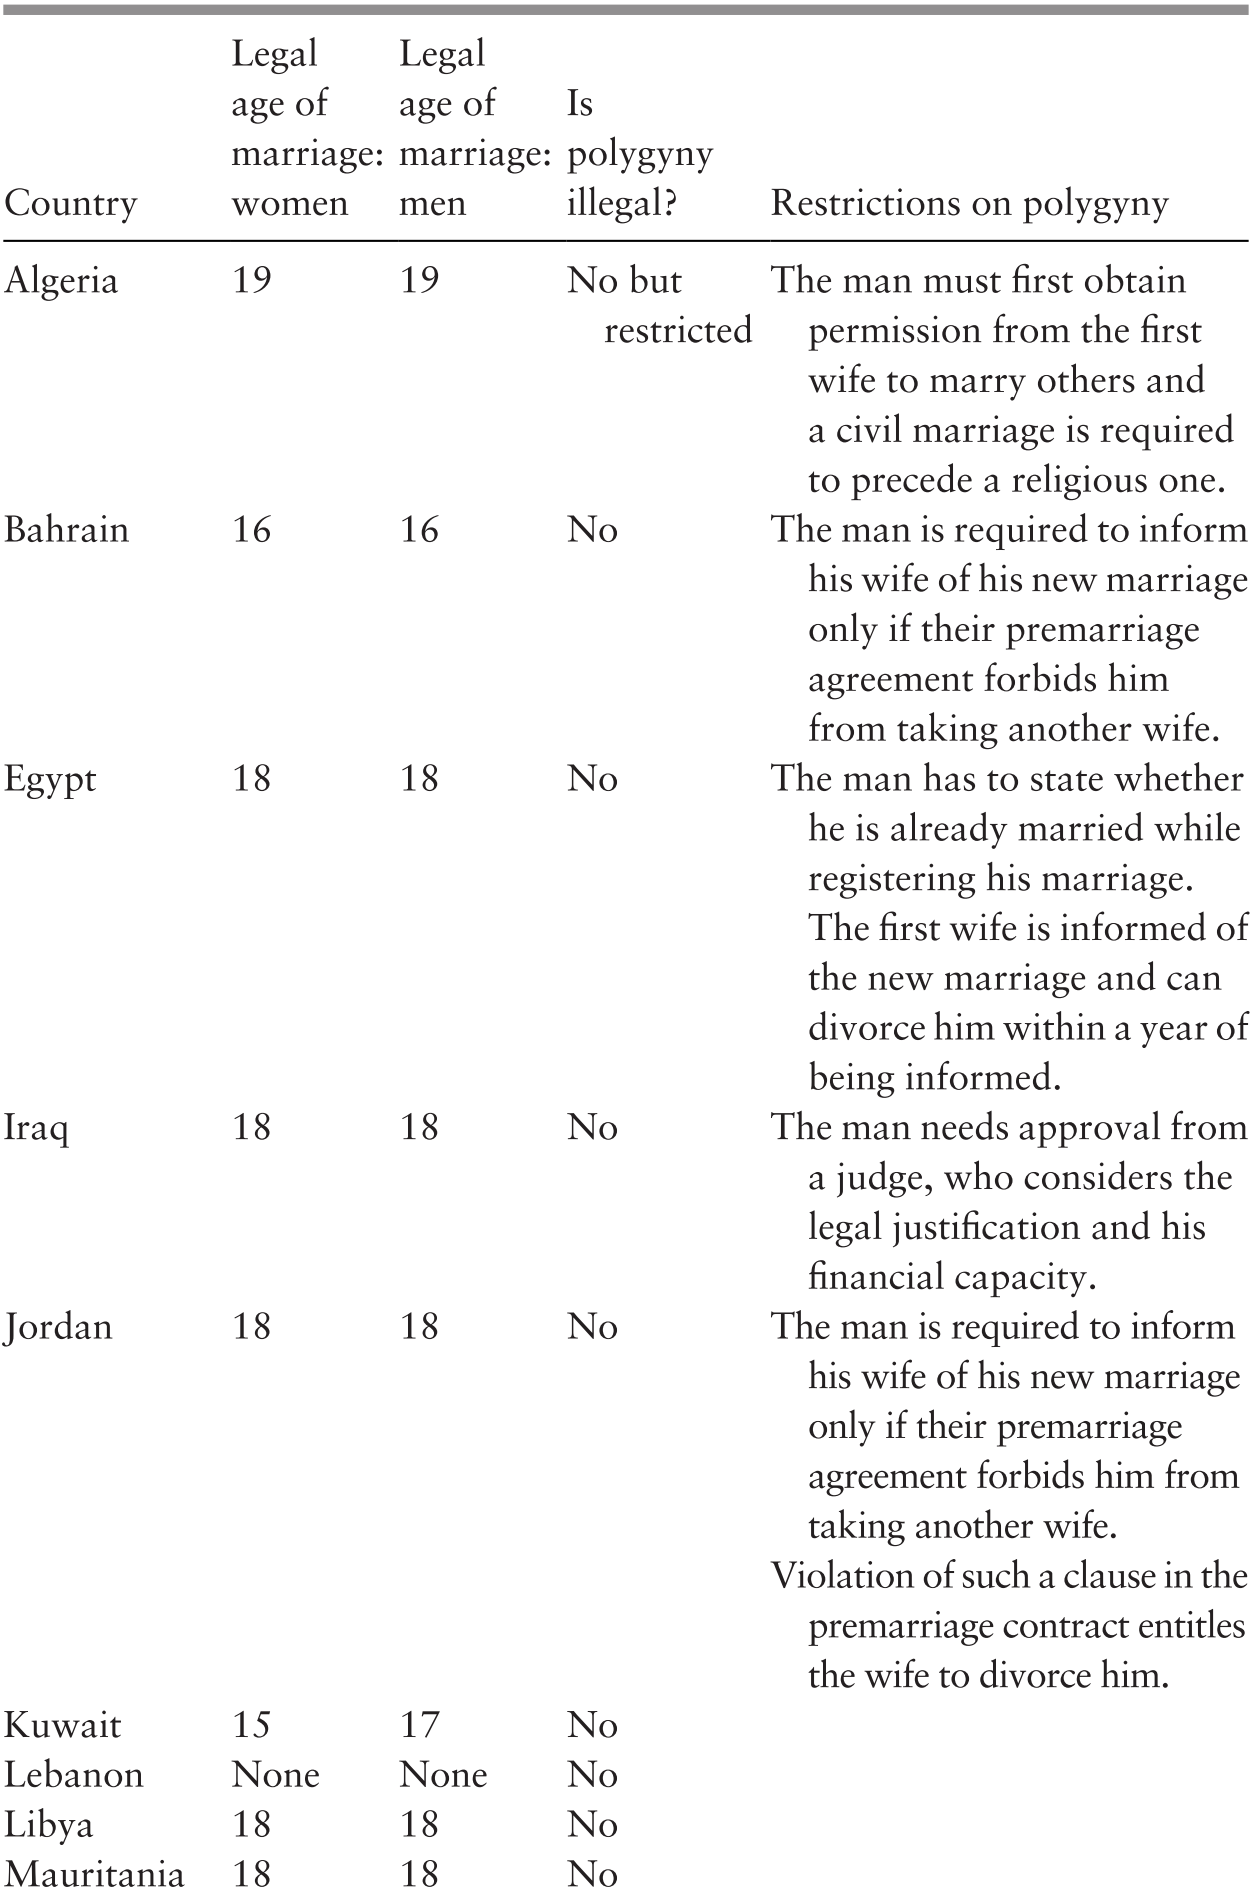 Comparing the Maghreb and the Middle East (Part I) - Seeking